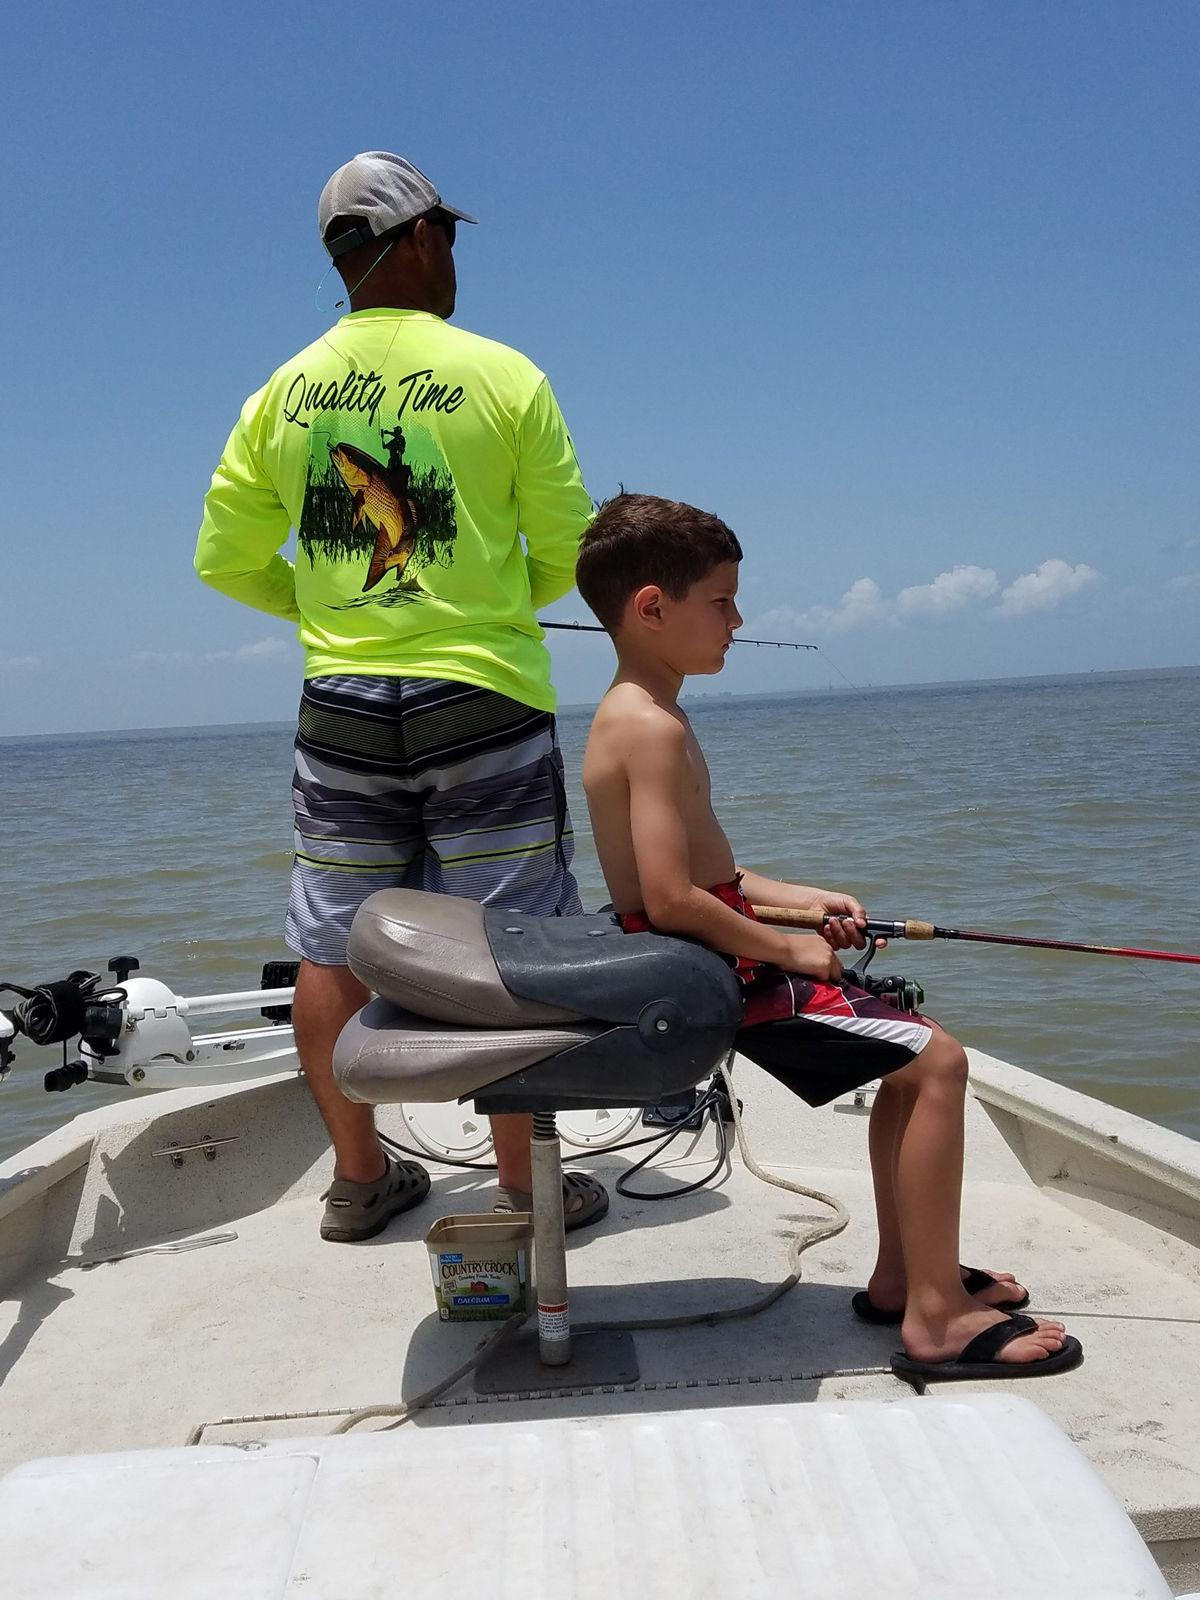 'Quality Time' takes precedence for St. Germain's fishing family